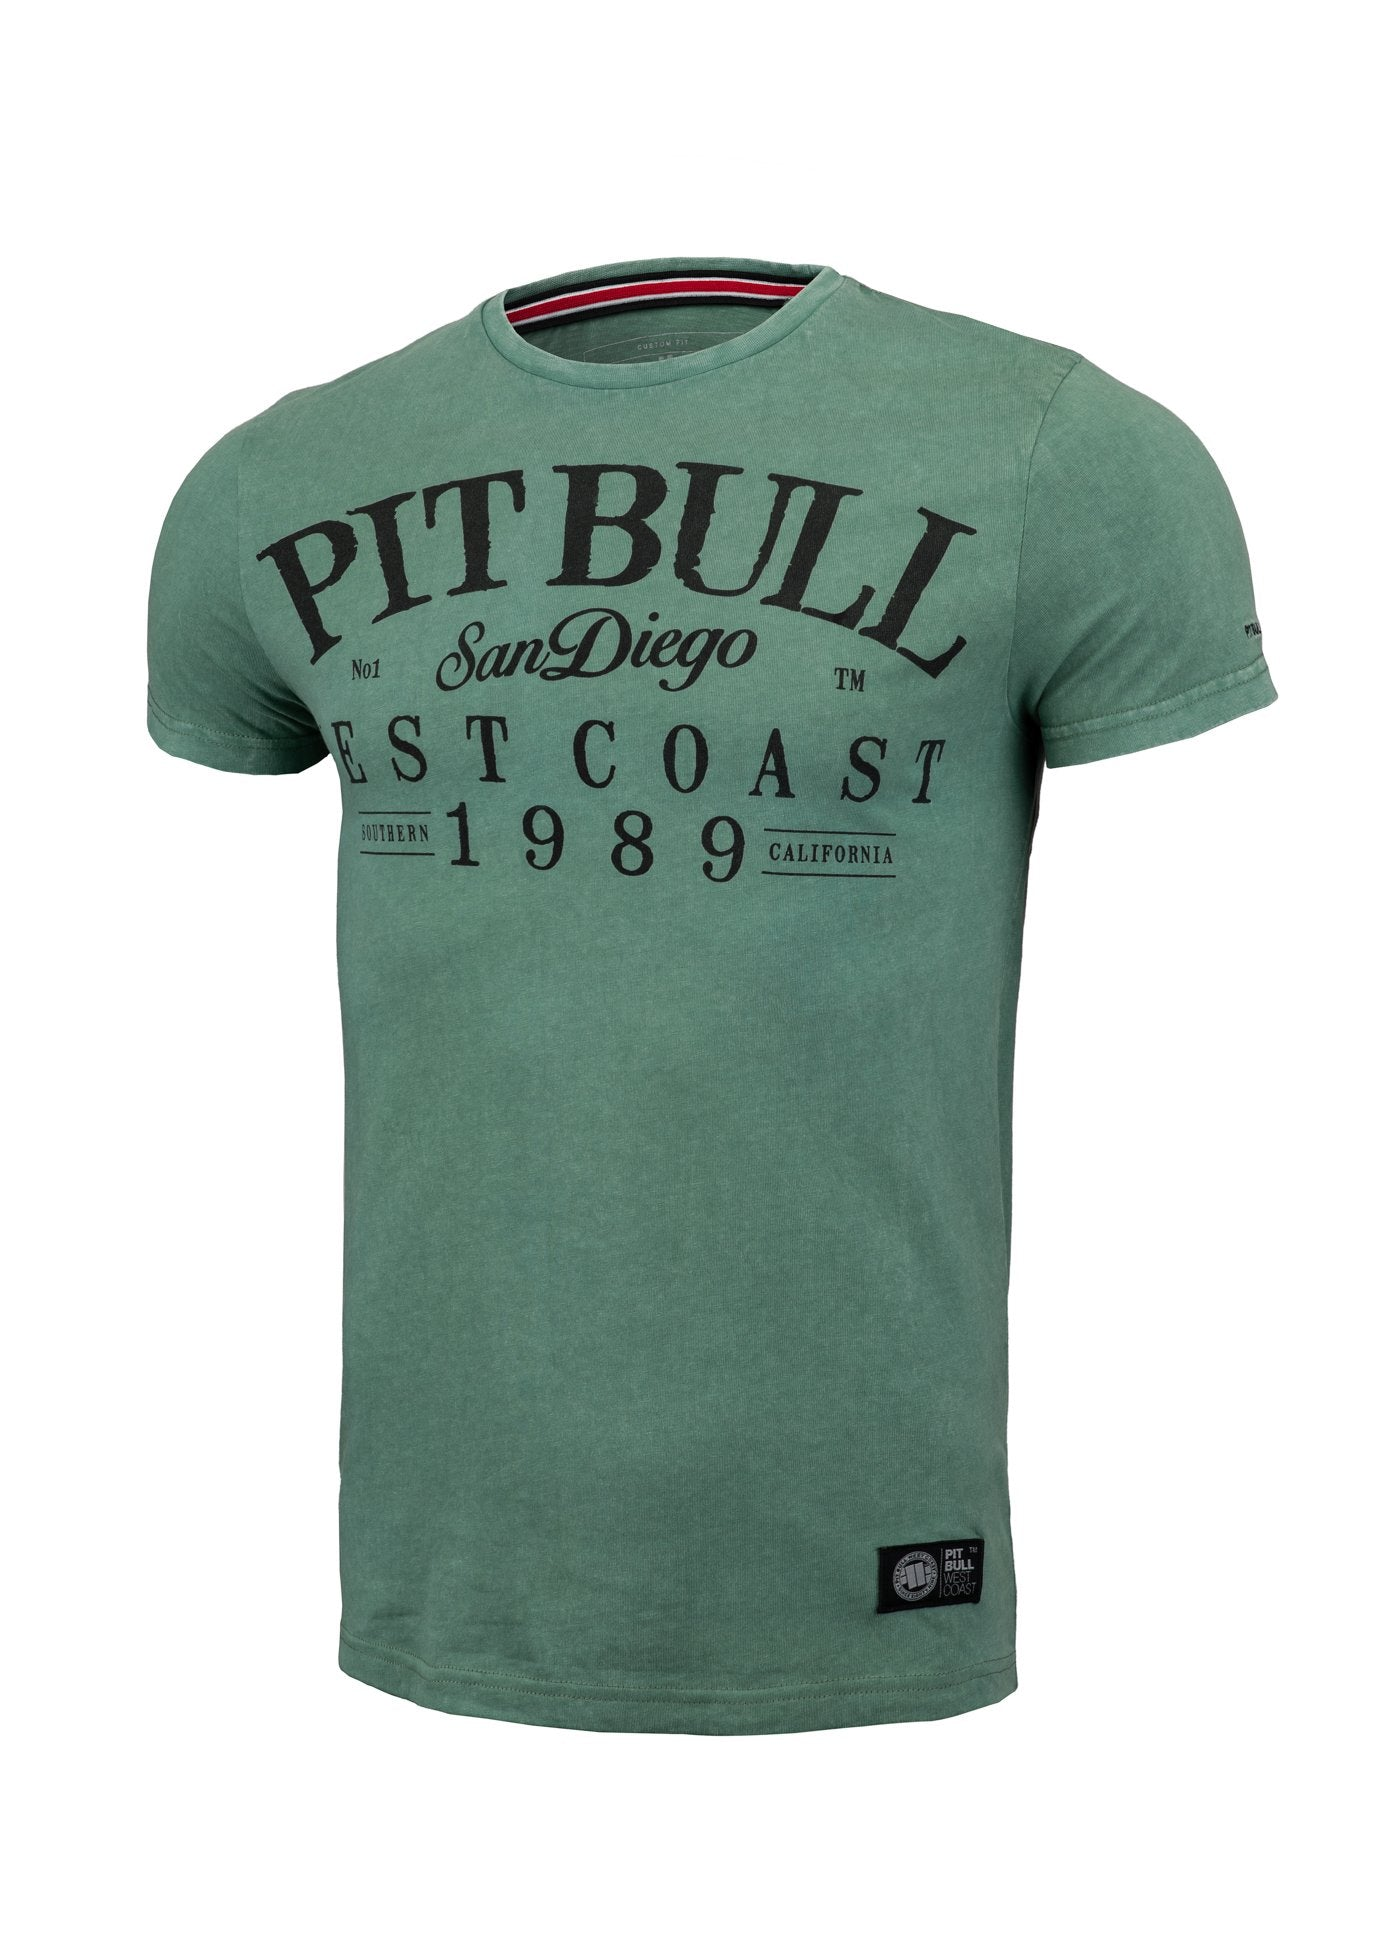 T-shirt Denim Oldschool Green - Pitbull West Coast U.S.A.